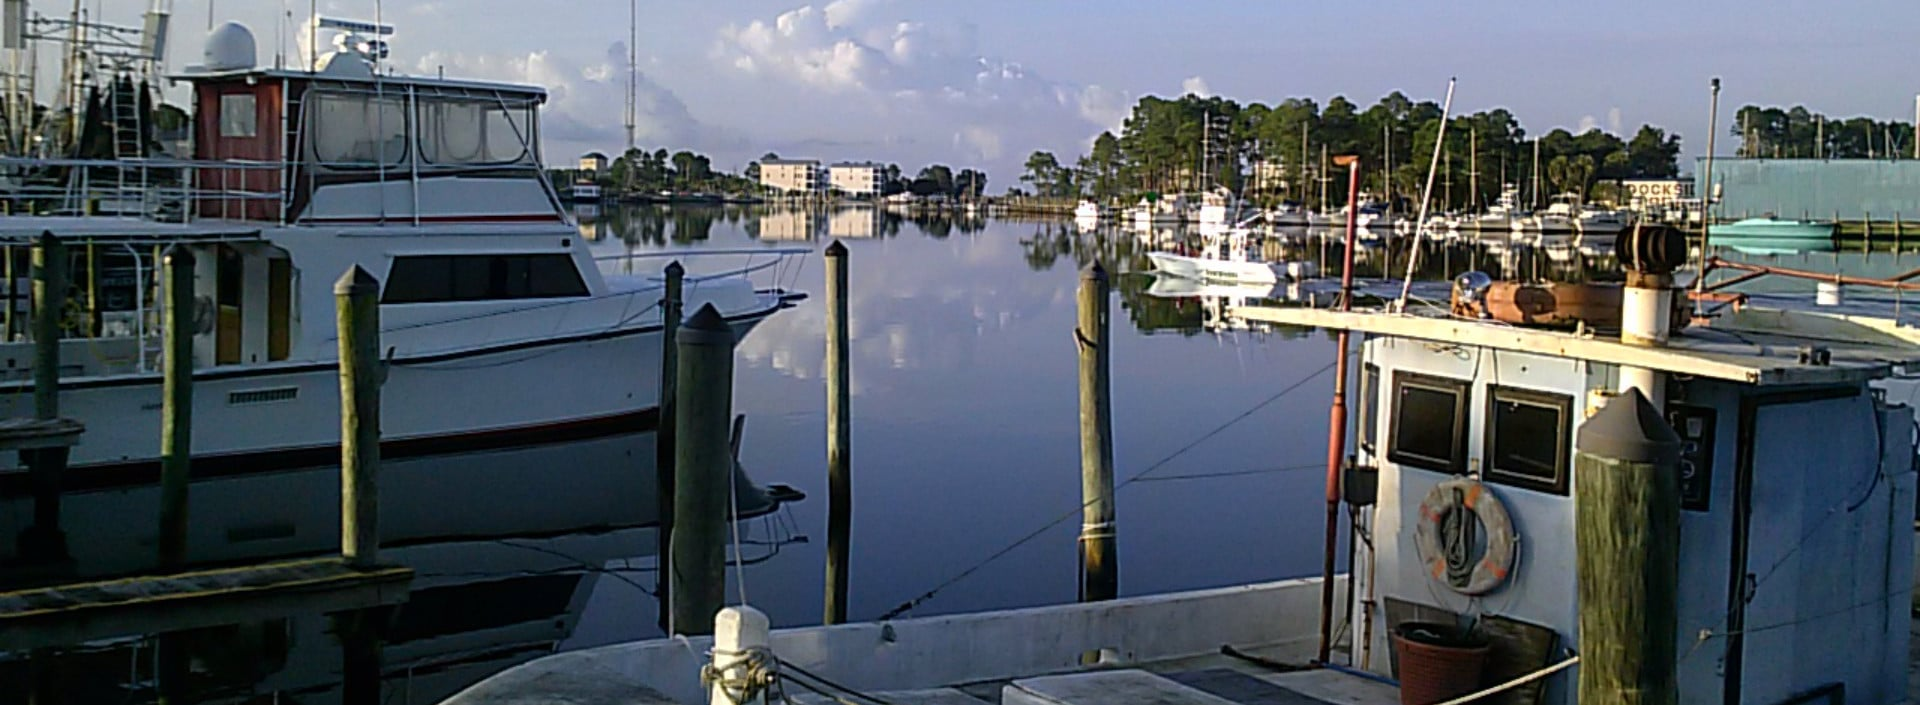 The Carrabelle Harbor